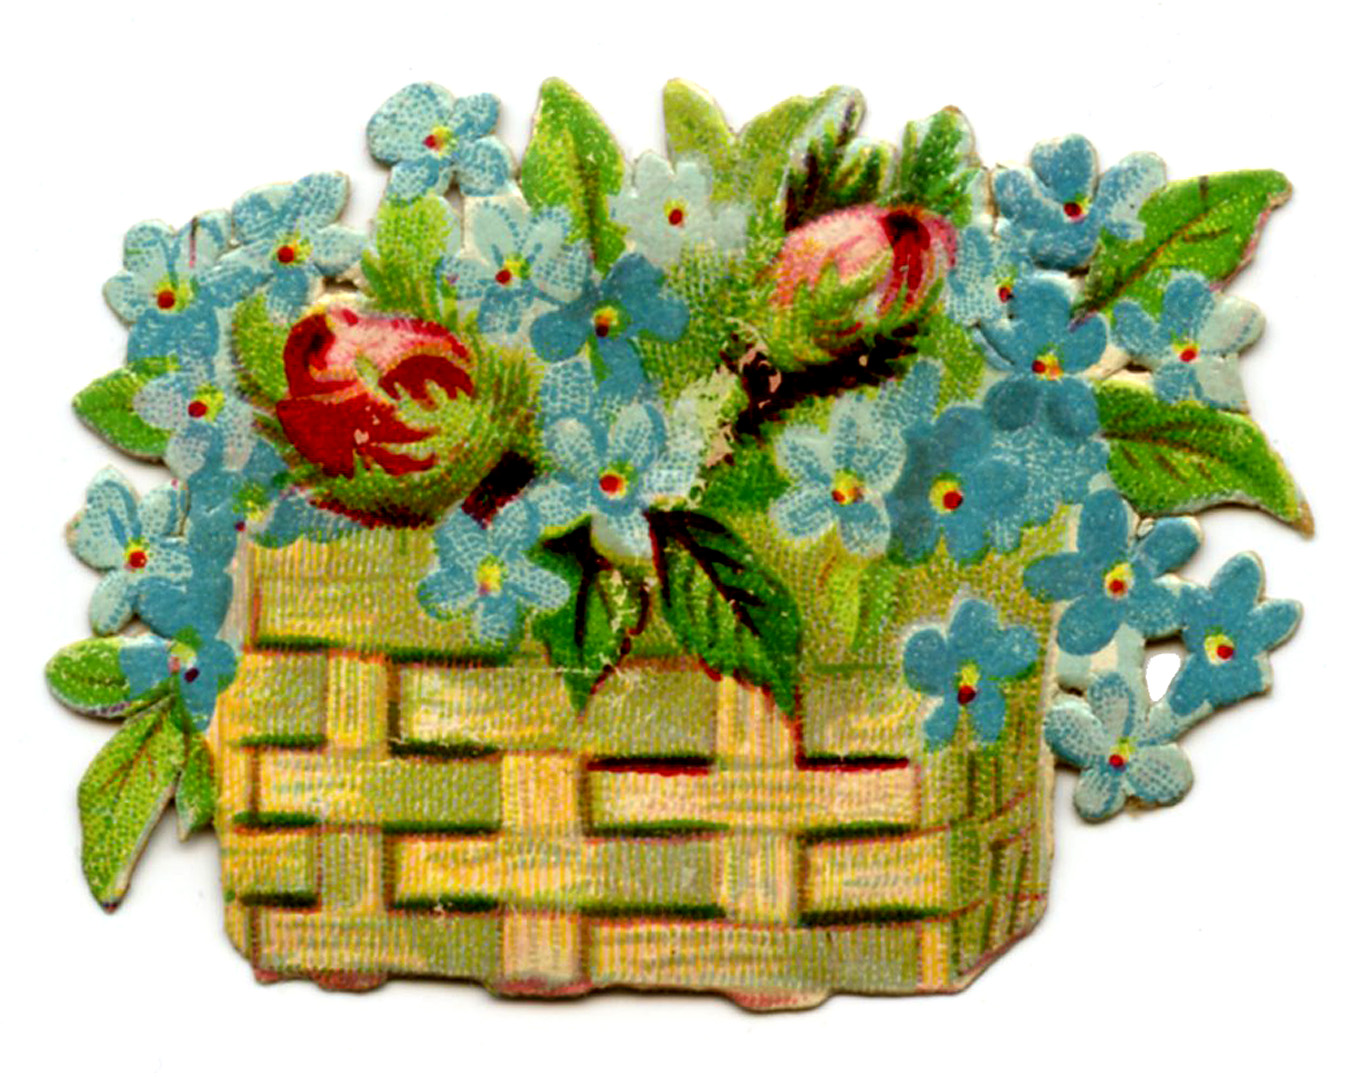 Flower Baskets Photos : Antique pictures flower baskets doves the graphics fairy